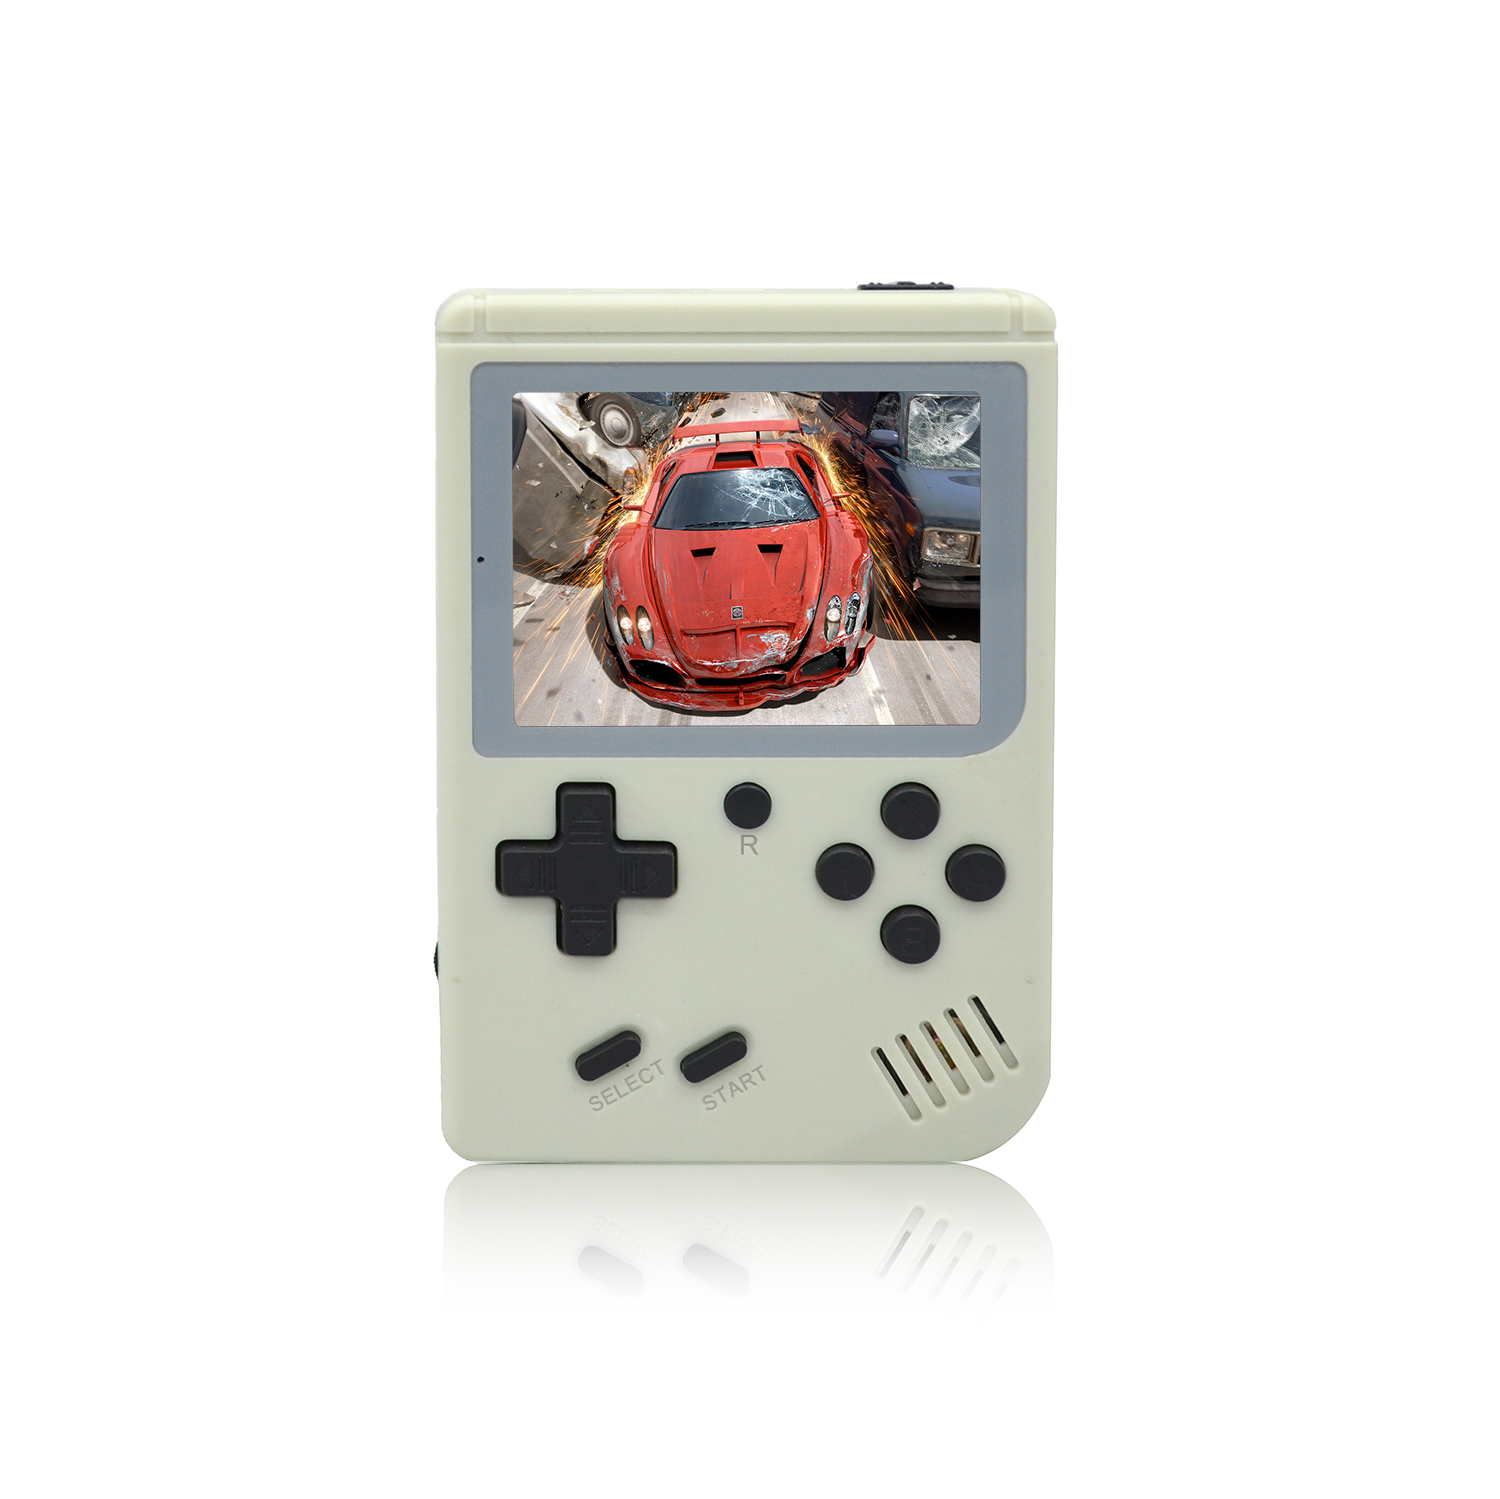 Children Retro Mini Portable Handheld Game Console Players 3.0 Inch Black 8 Bit Classic Video Handheld Game Console RETRO-FC 07